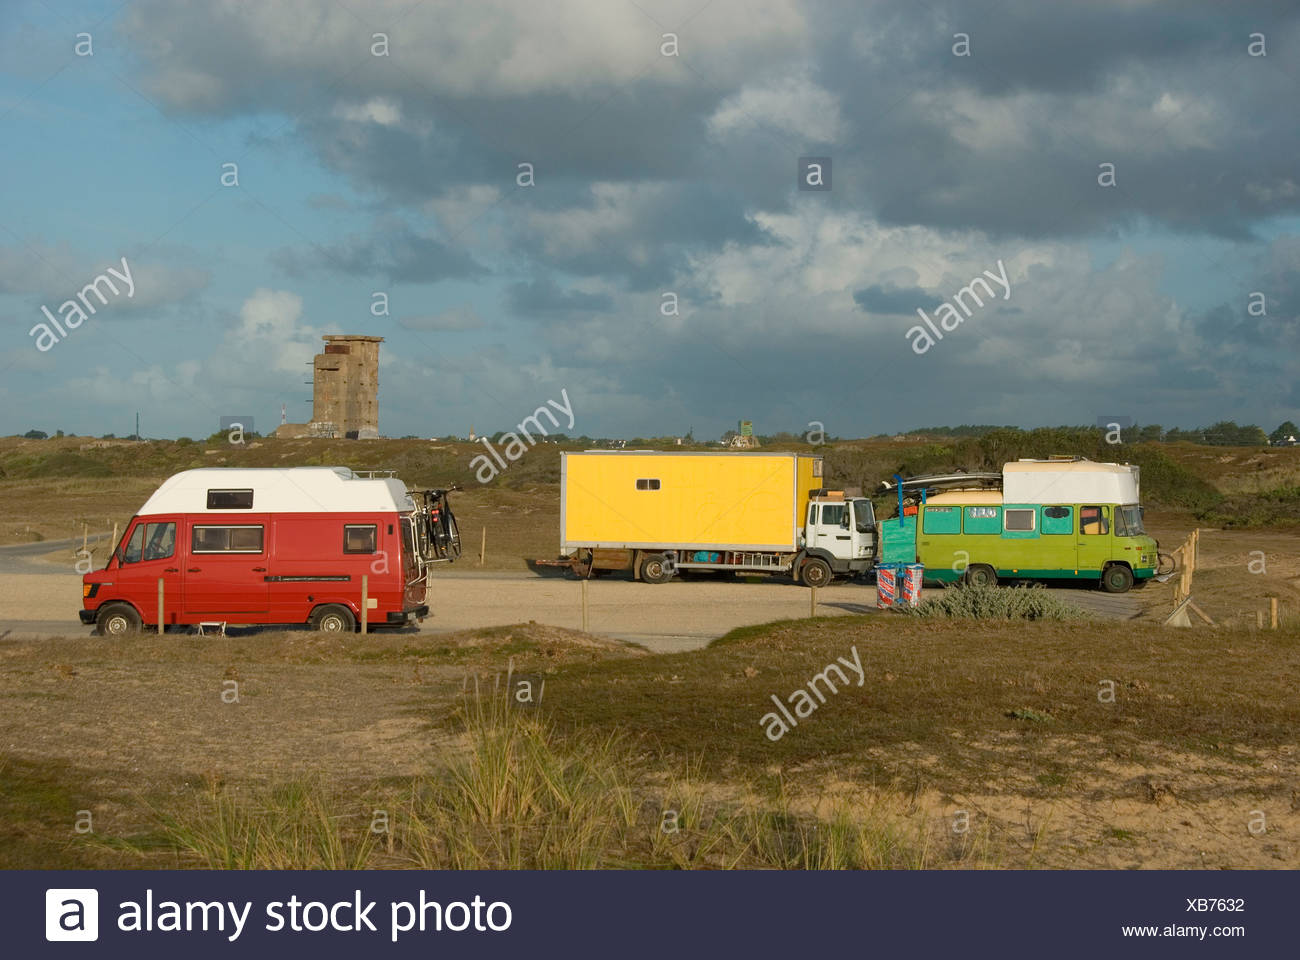 old mobile homes Stock Photo: 282285558 - Alamy on mobile cars commercial, mobile health, heales is home commercial,